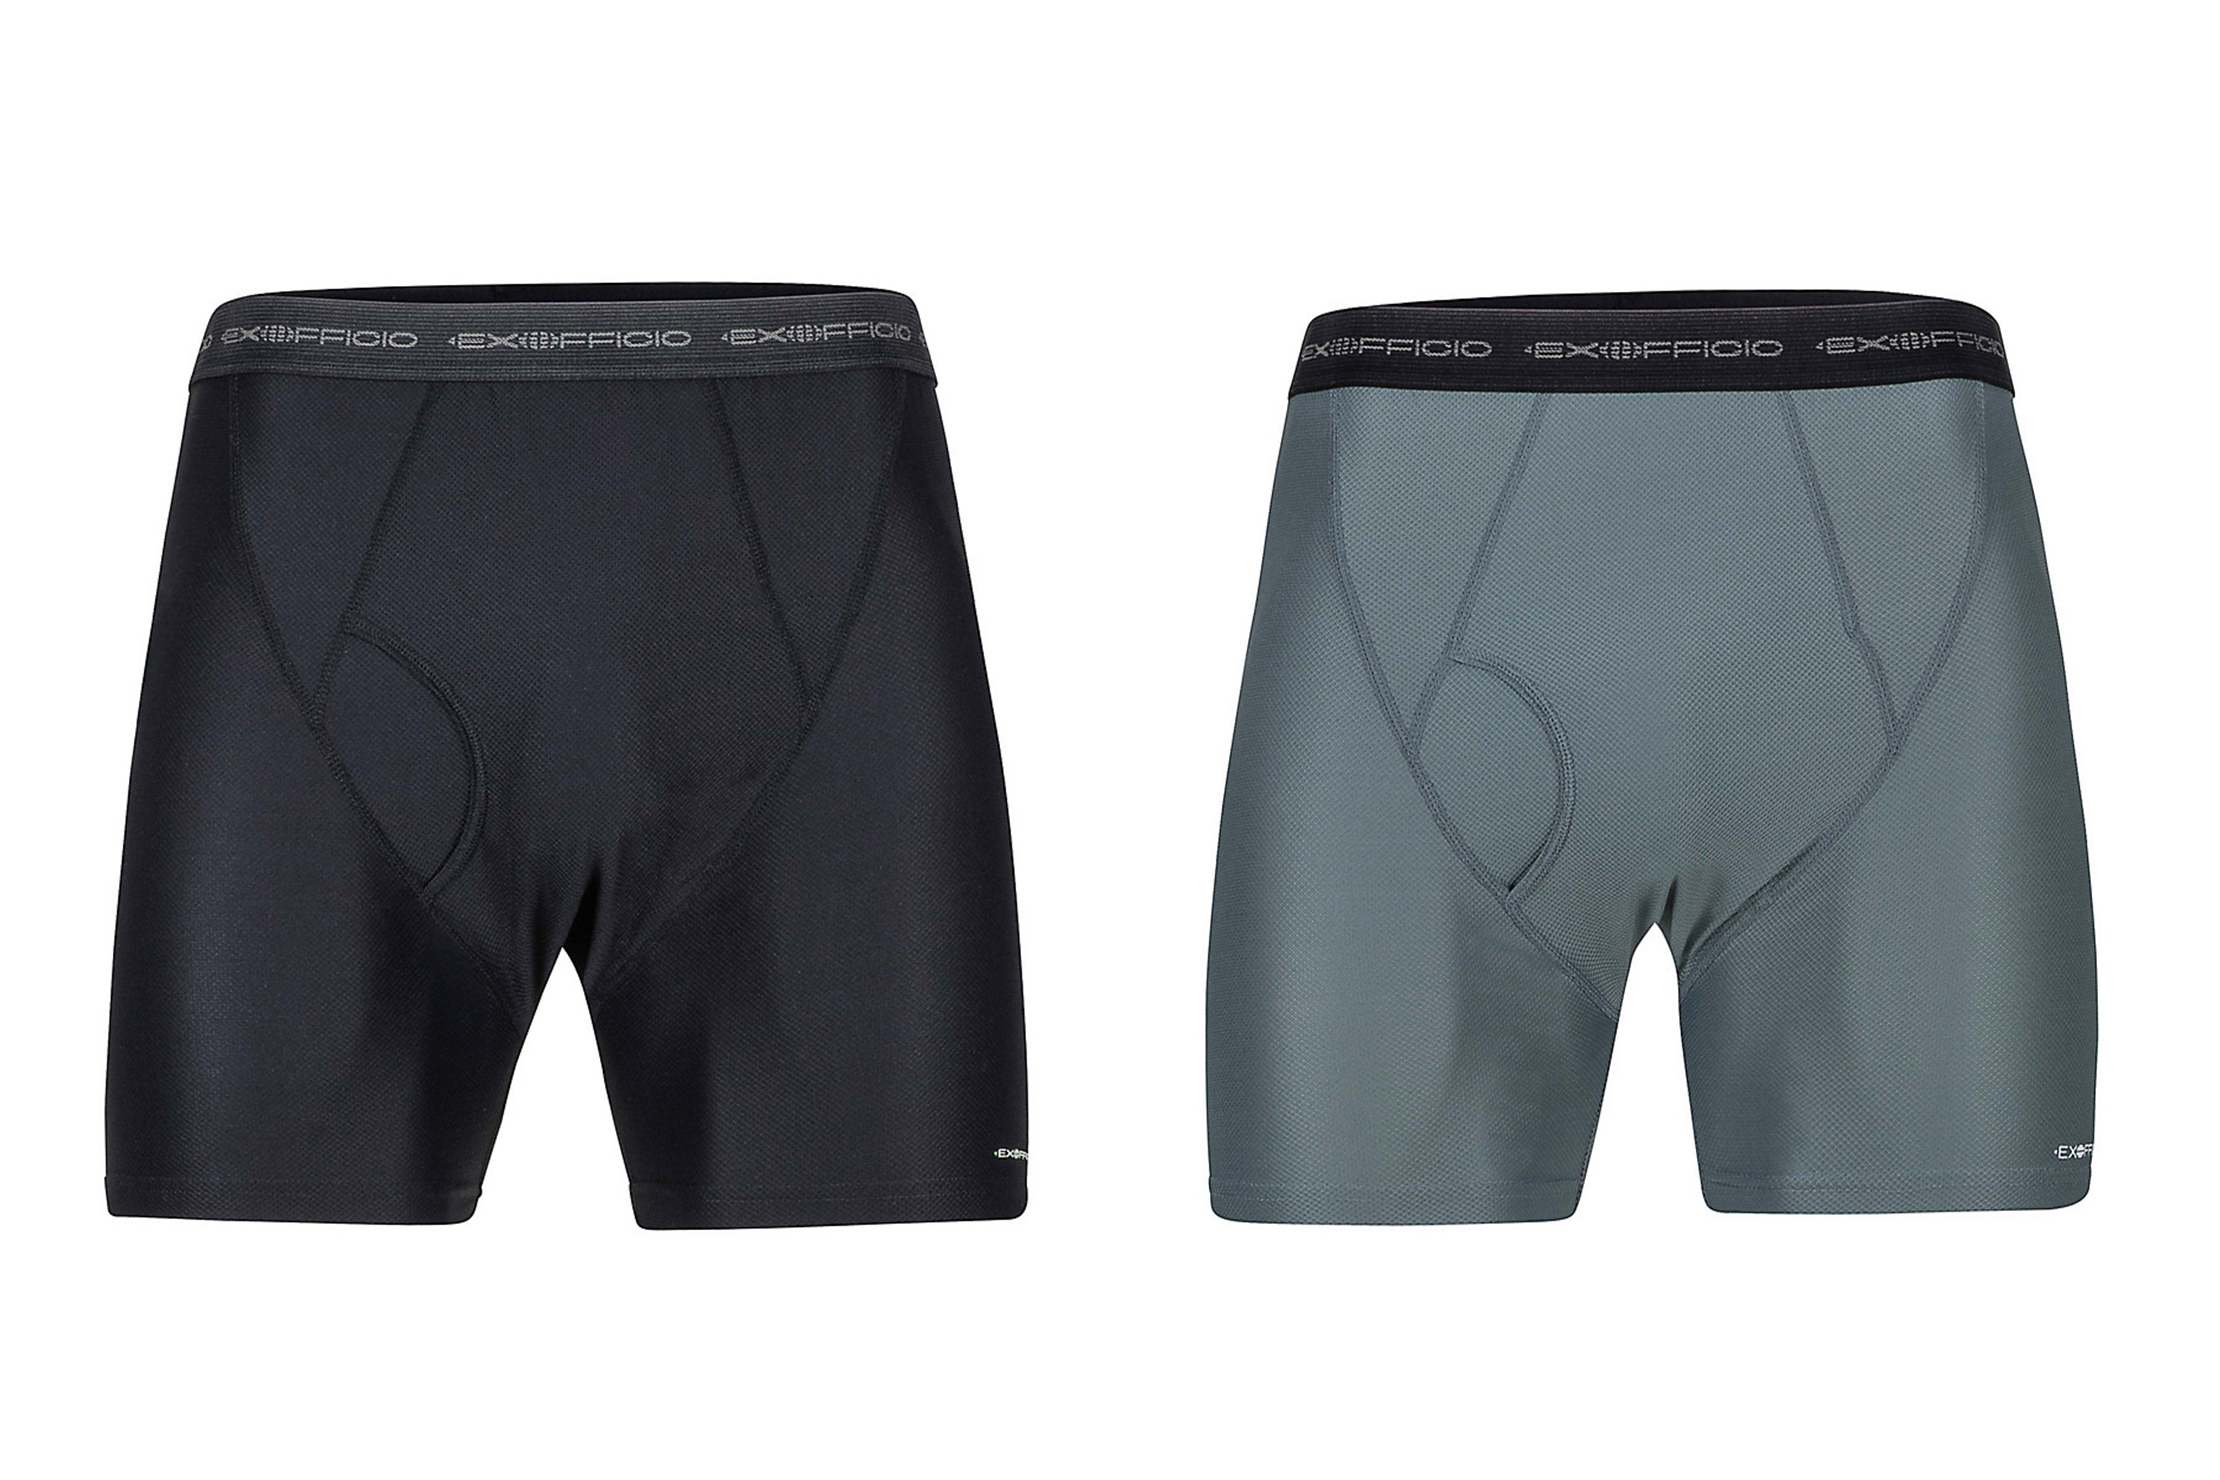 ExOfficio Boxer Brief (Give-N-Go) In Black And Charcoal